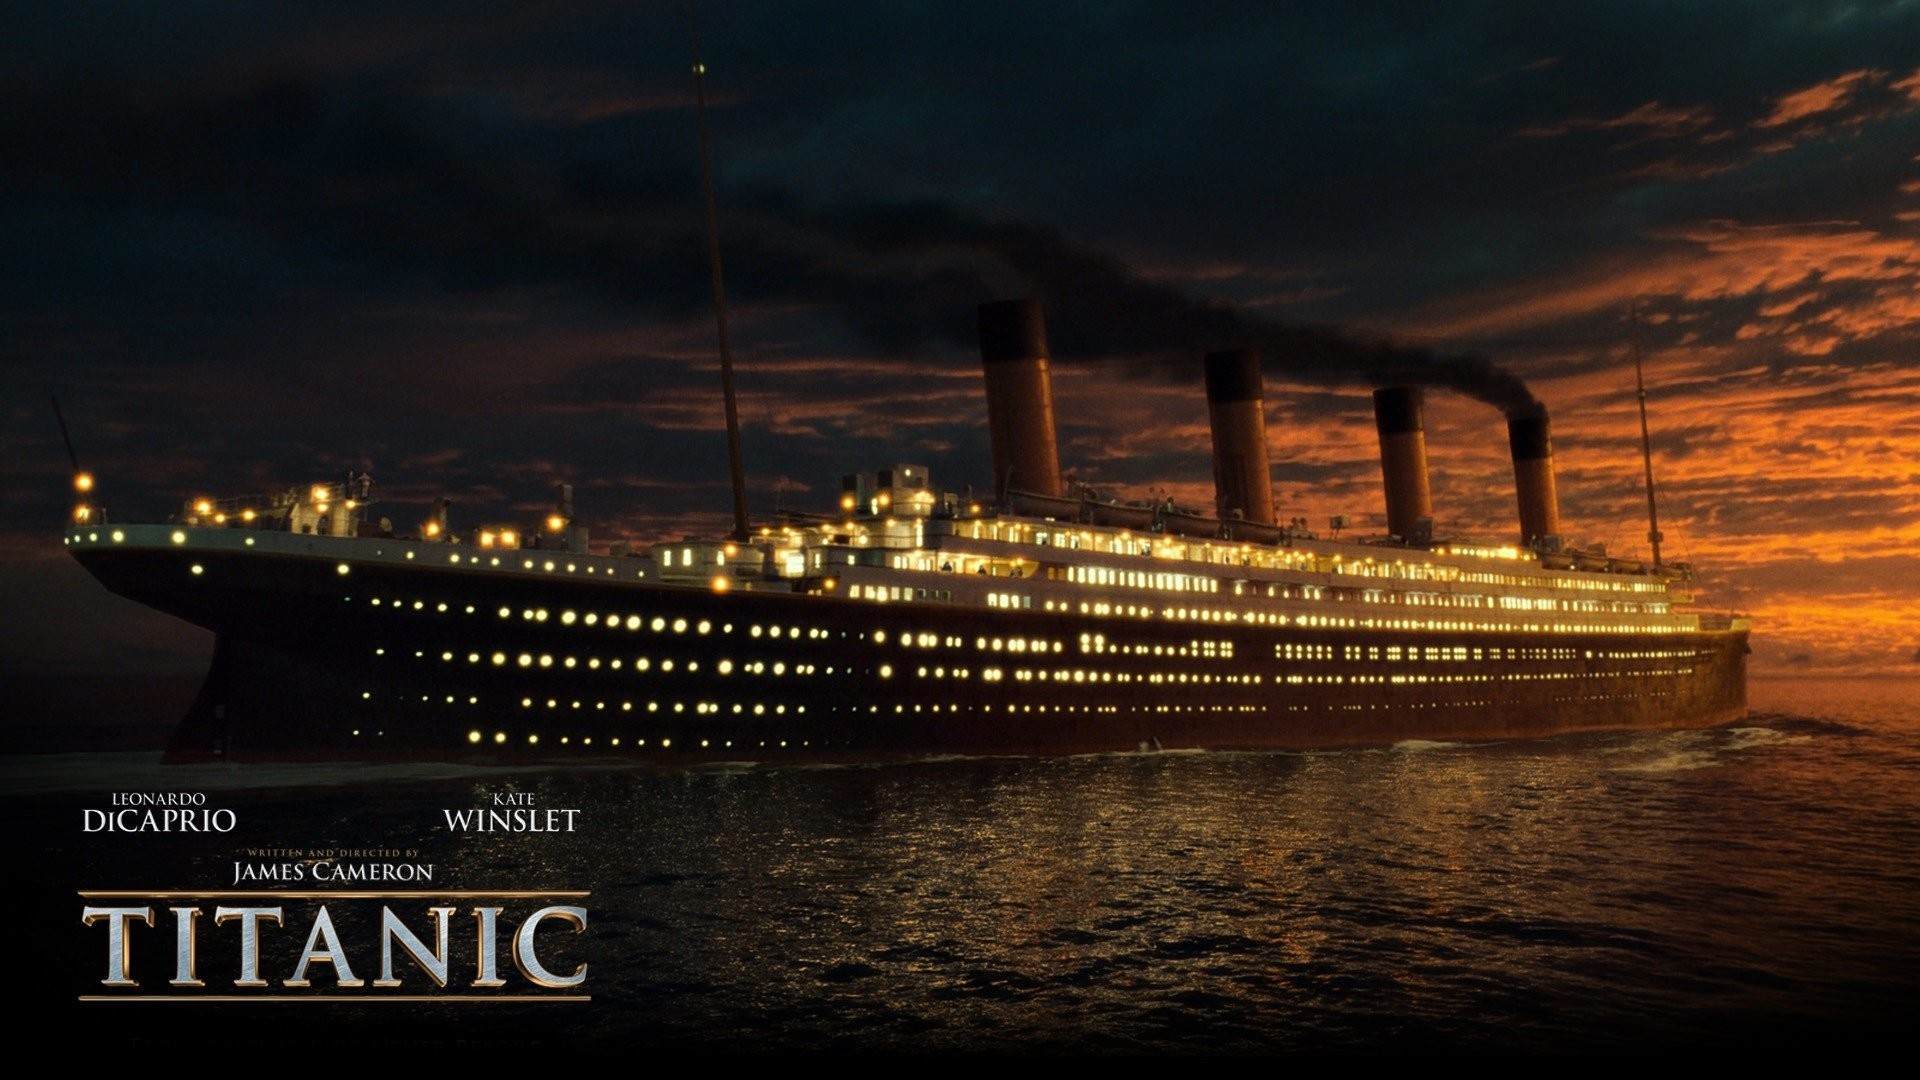 1920x1080 Titanic Sinking Ship Wrecks Boats Background Wallpapers on | HD Wallpapers  | Pinterest | Titanic ship, Hd wallpaper and Wallpaper